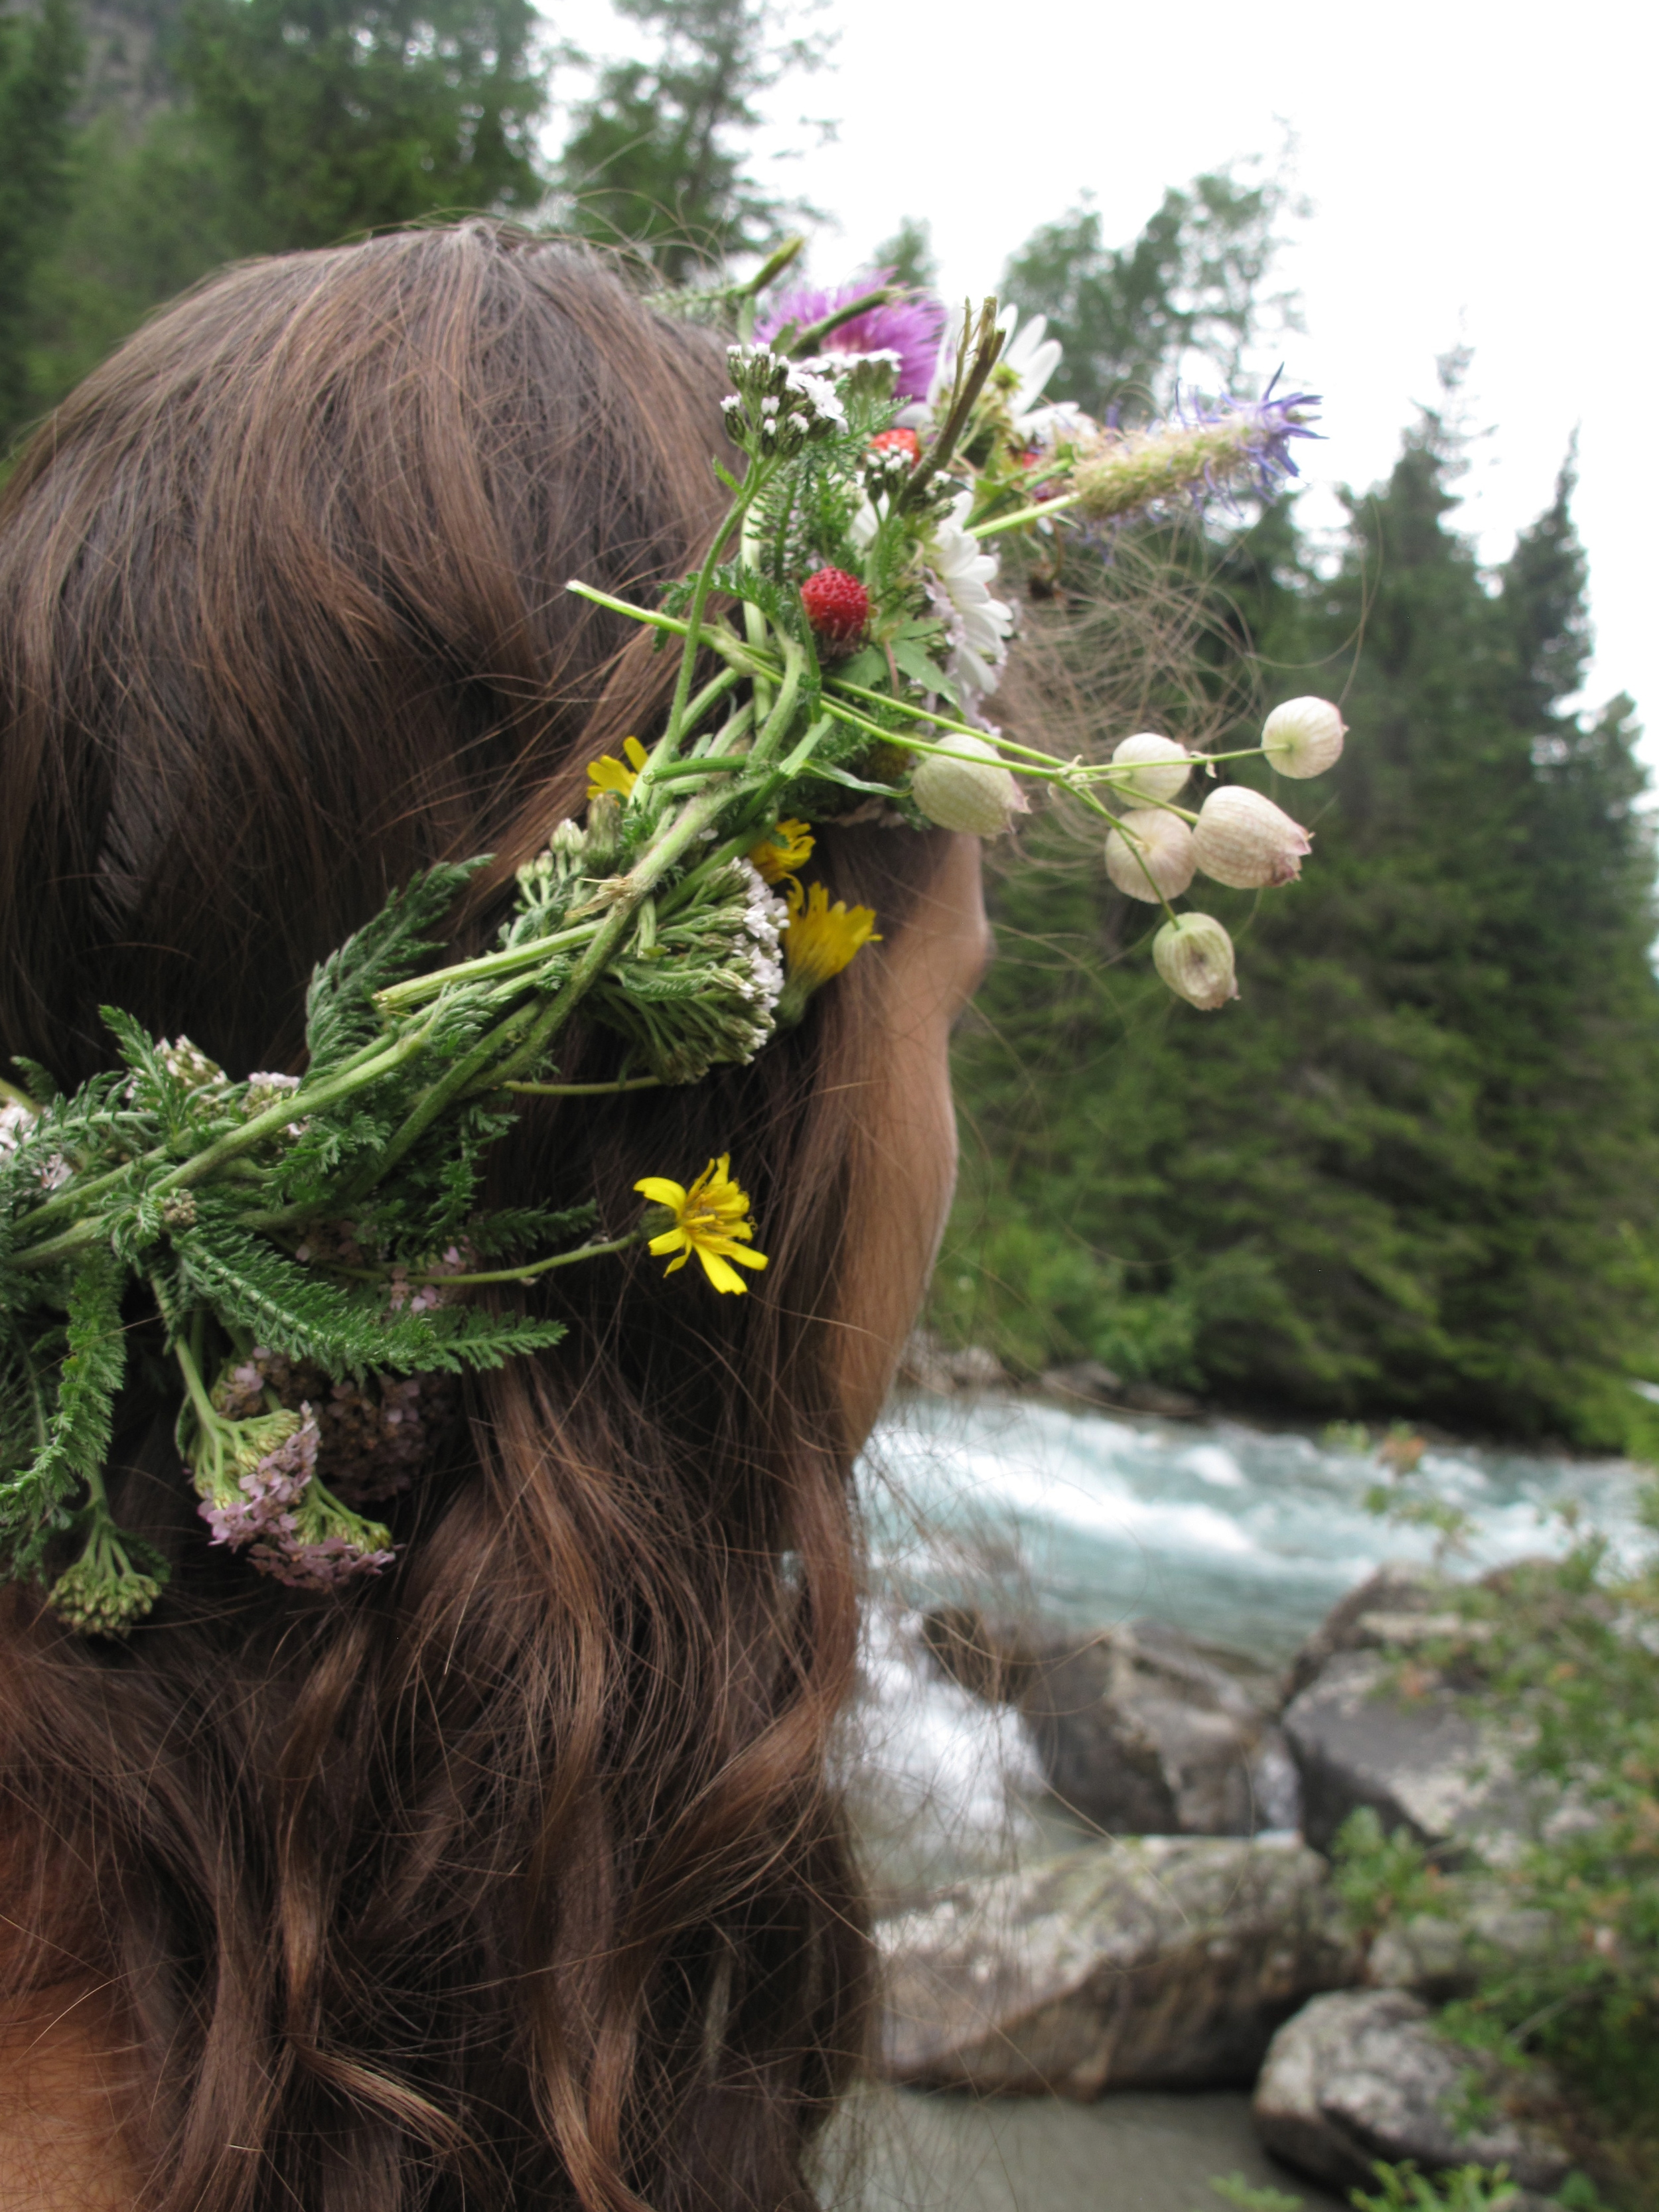 River nymph and a wild flower crown.